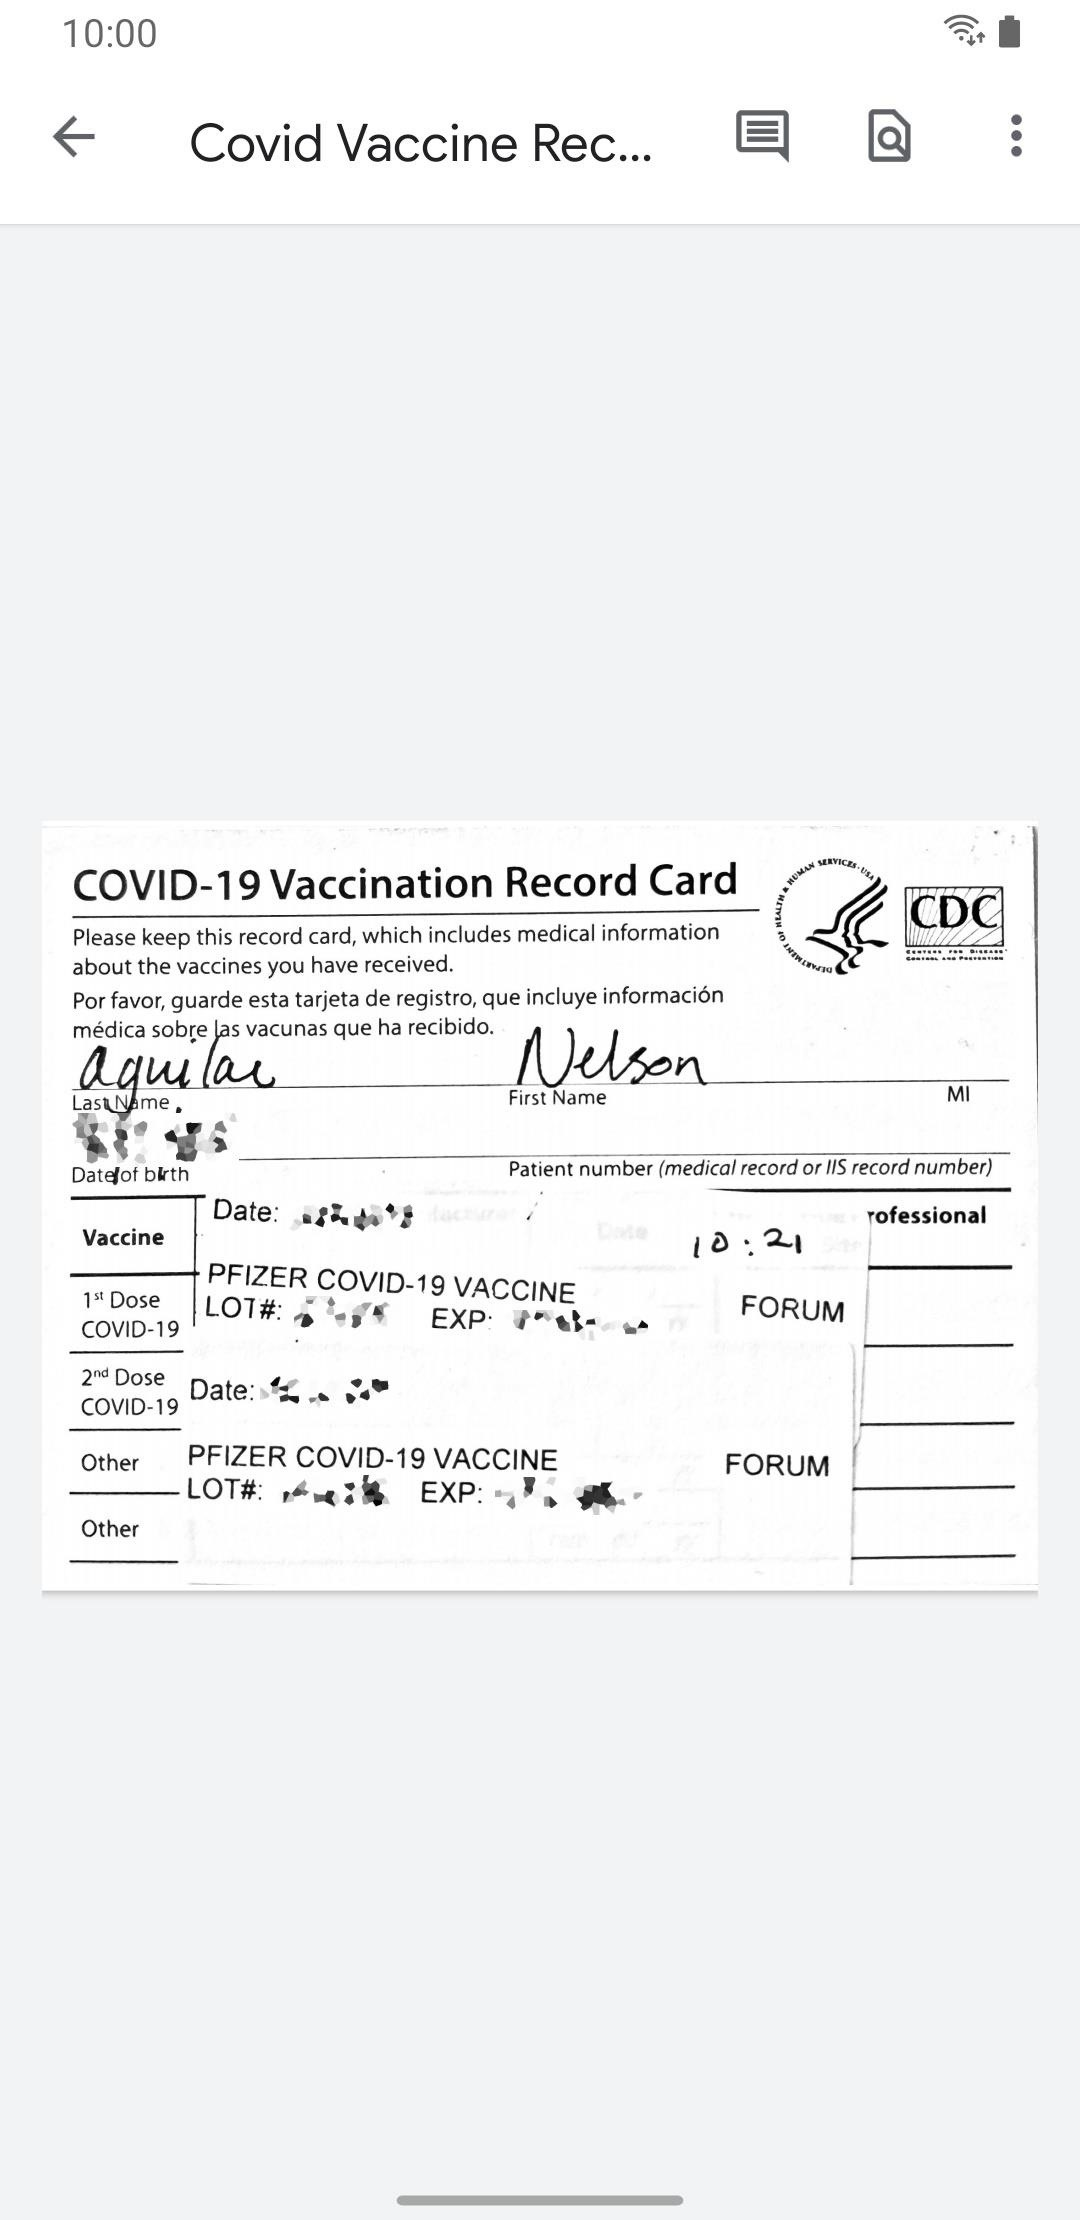 Digitize Your COVID-19 Vaccination Record Card on Your Phone for Easy Access Anywhere